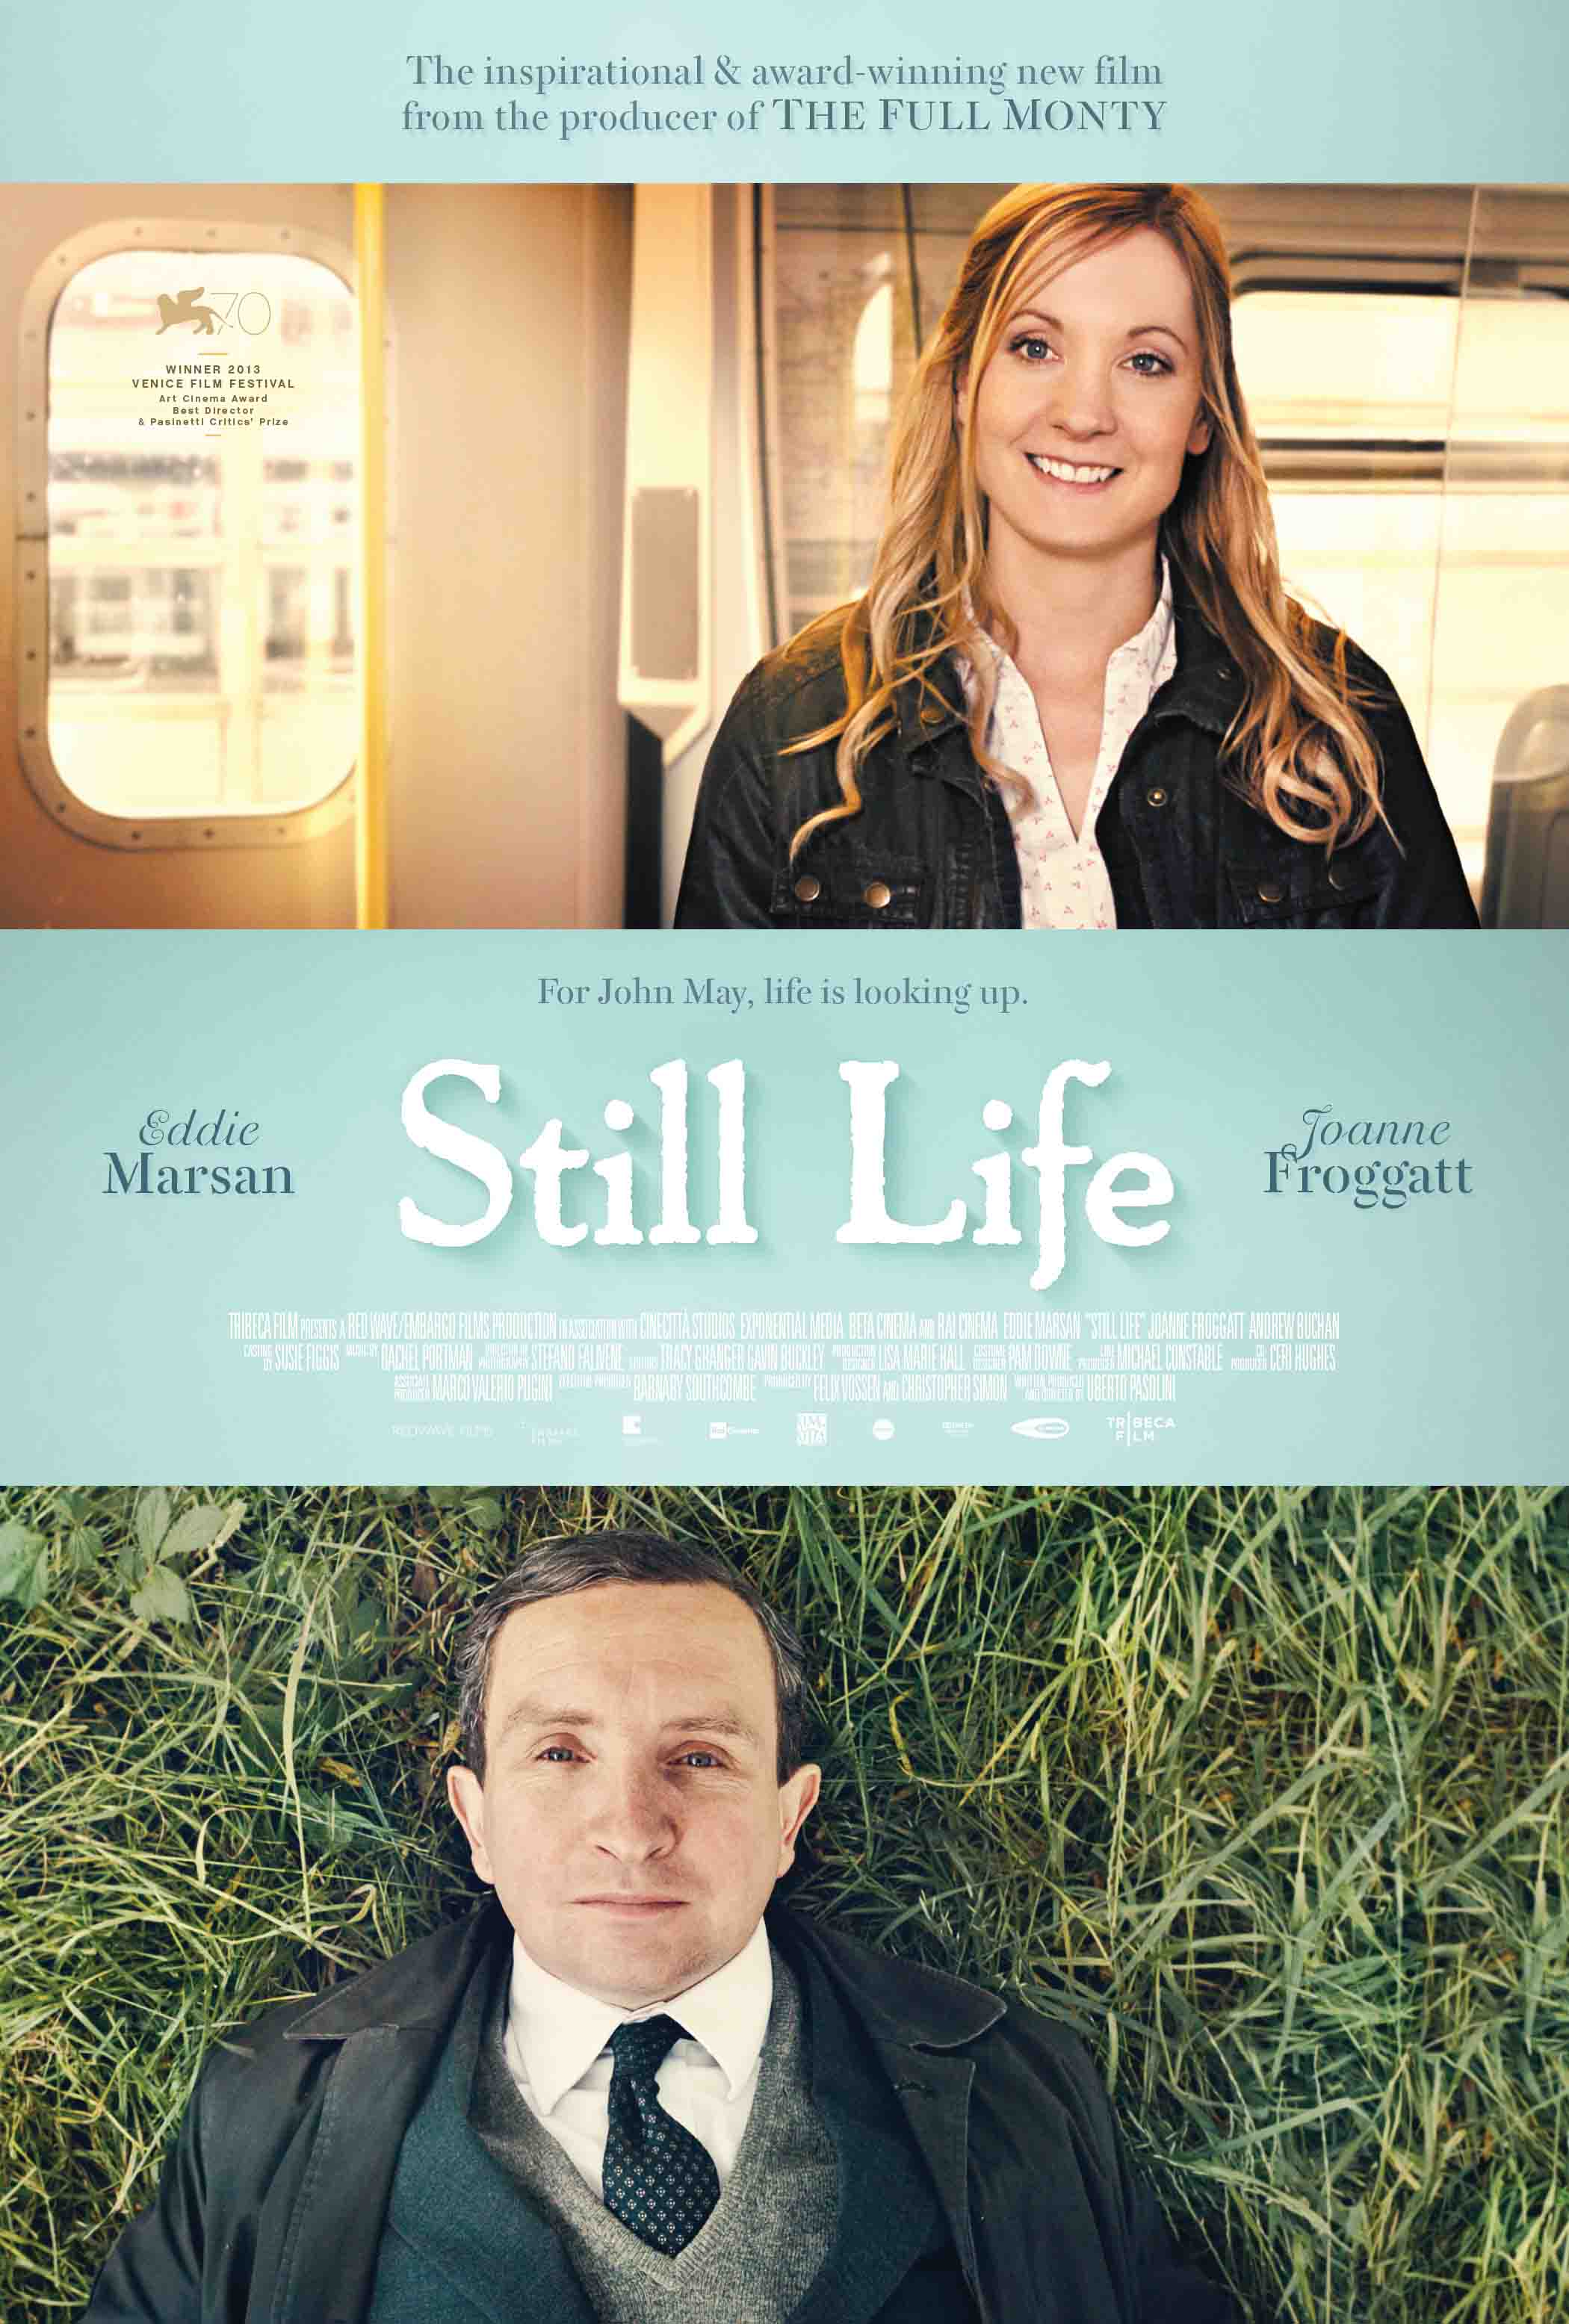 Life after life: movie reviews, actors and roles 16